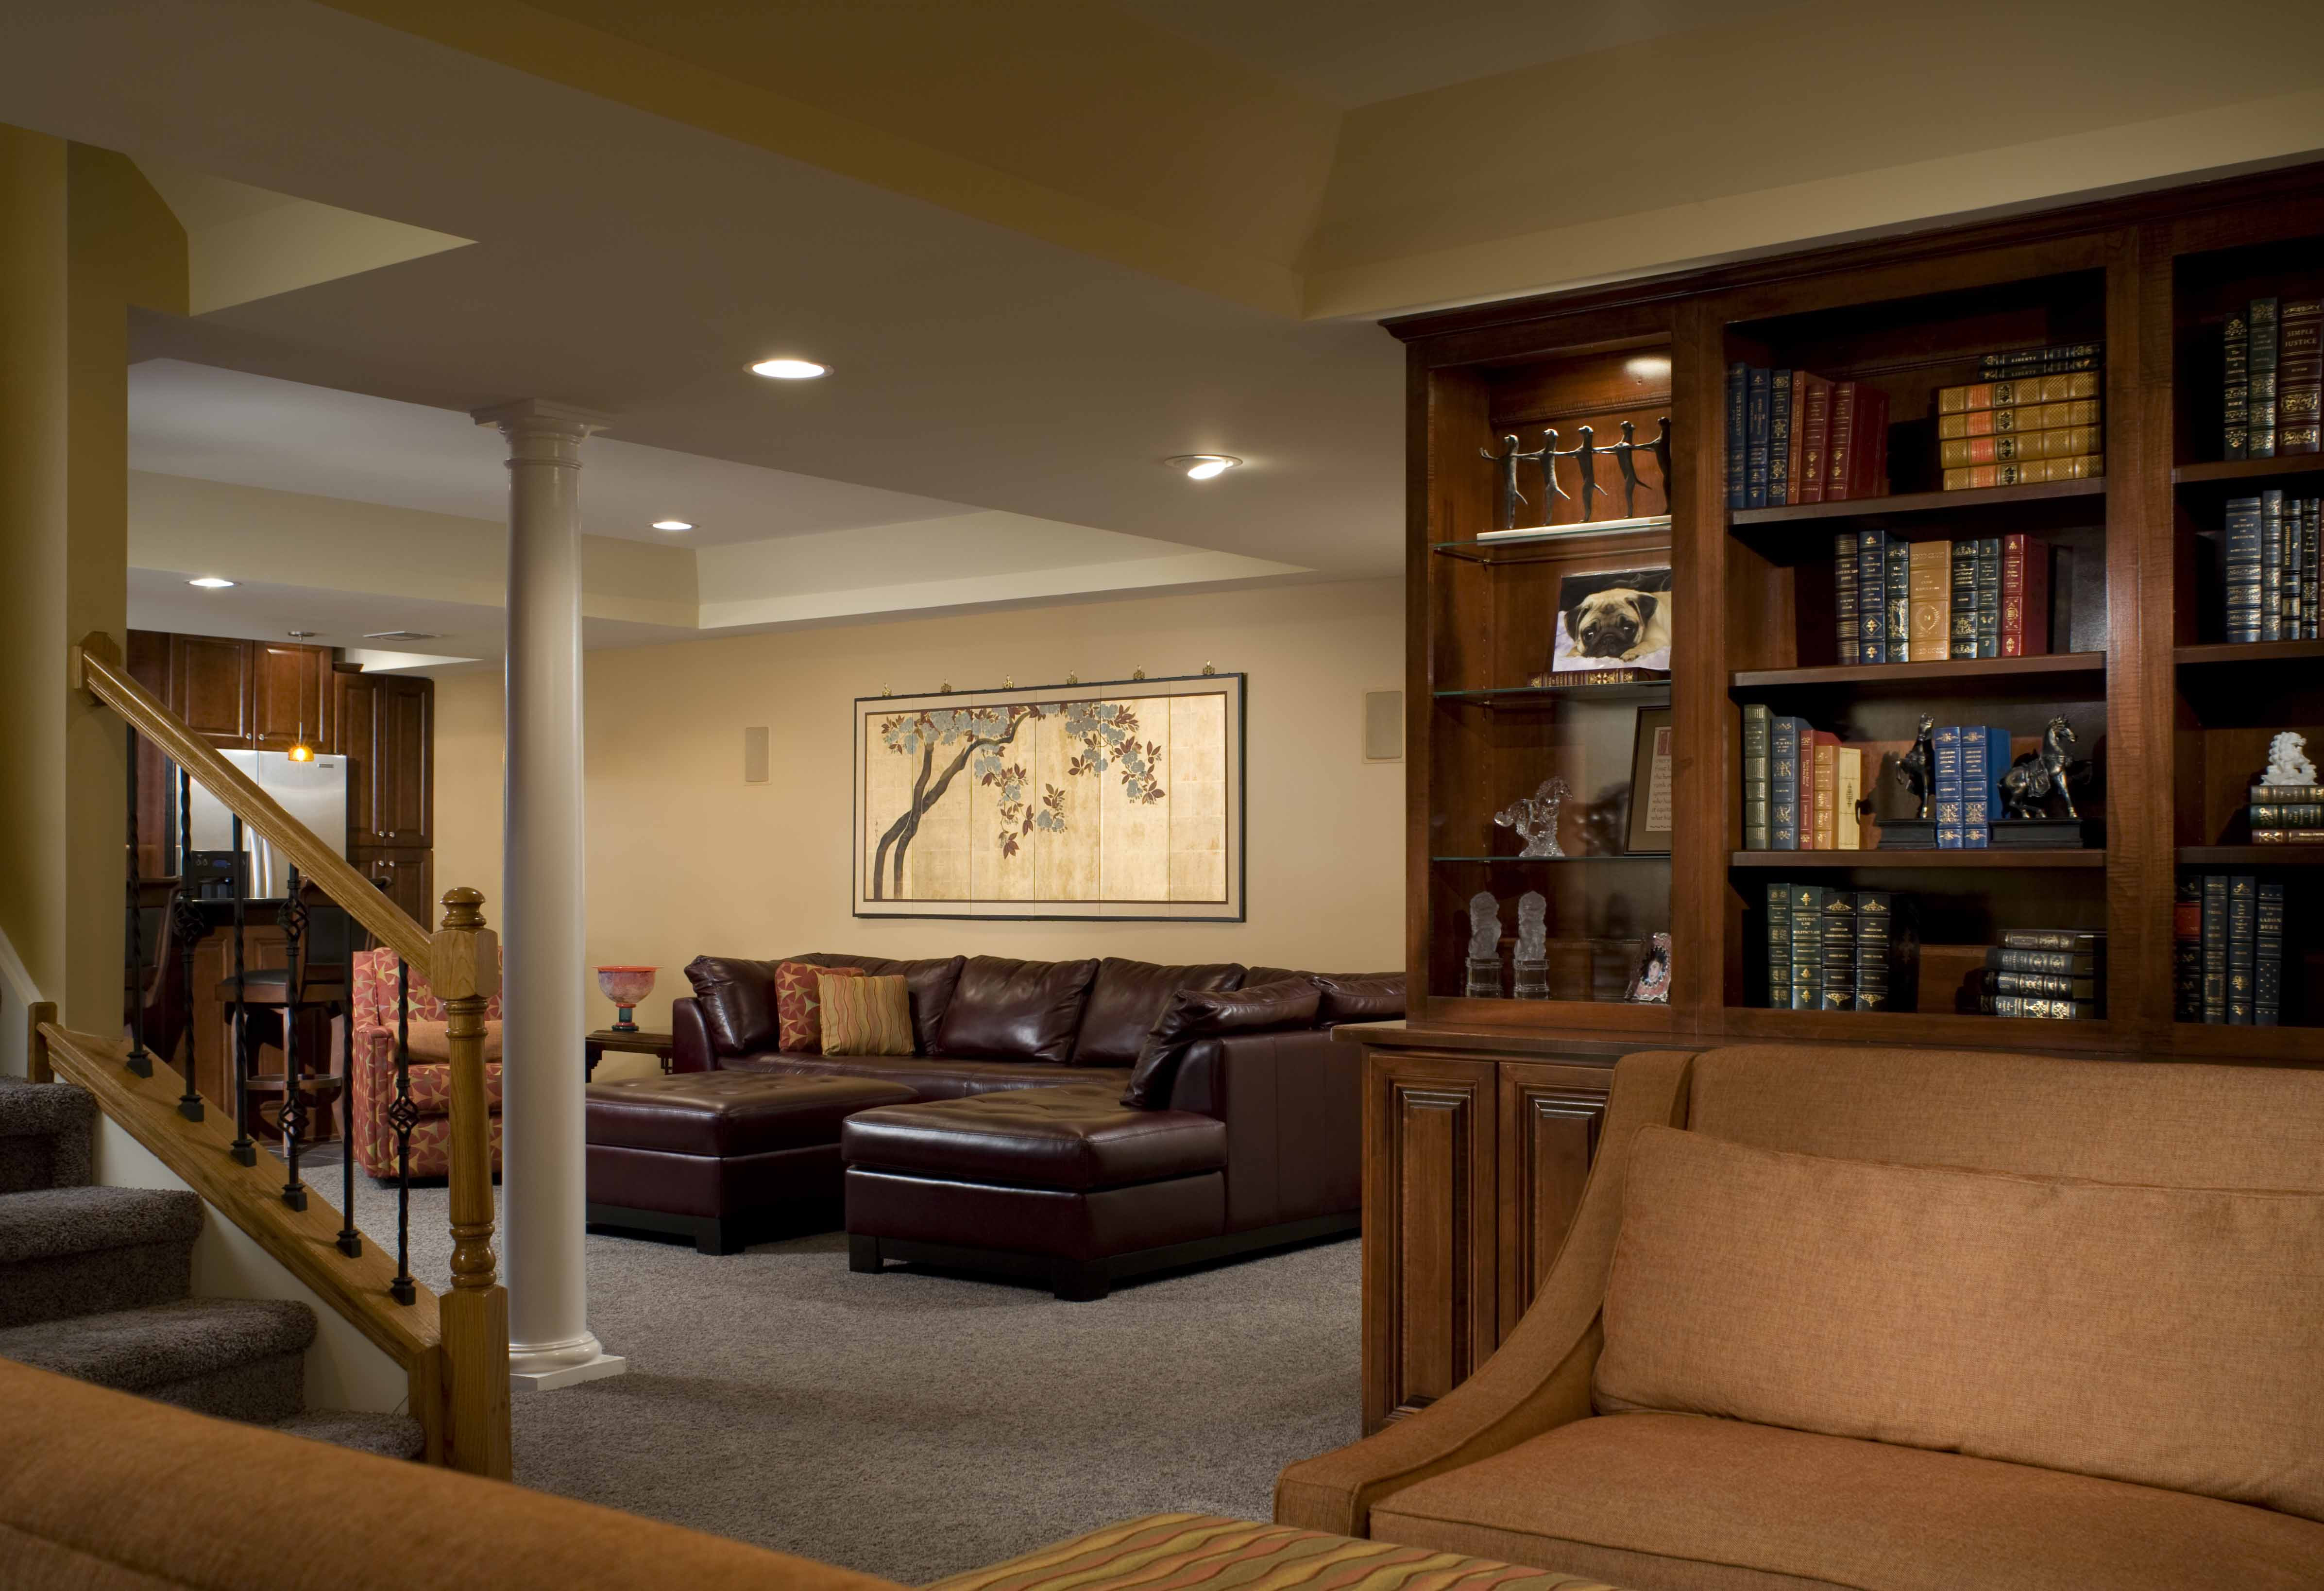 Best ideas about Remodel Basement Ideas . Save or Pin Cool Basement Ideas For Lounging Area Now.